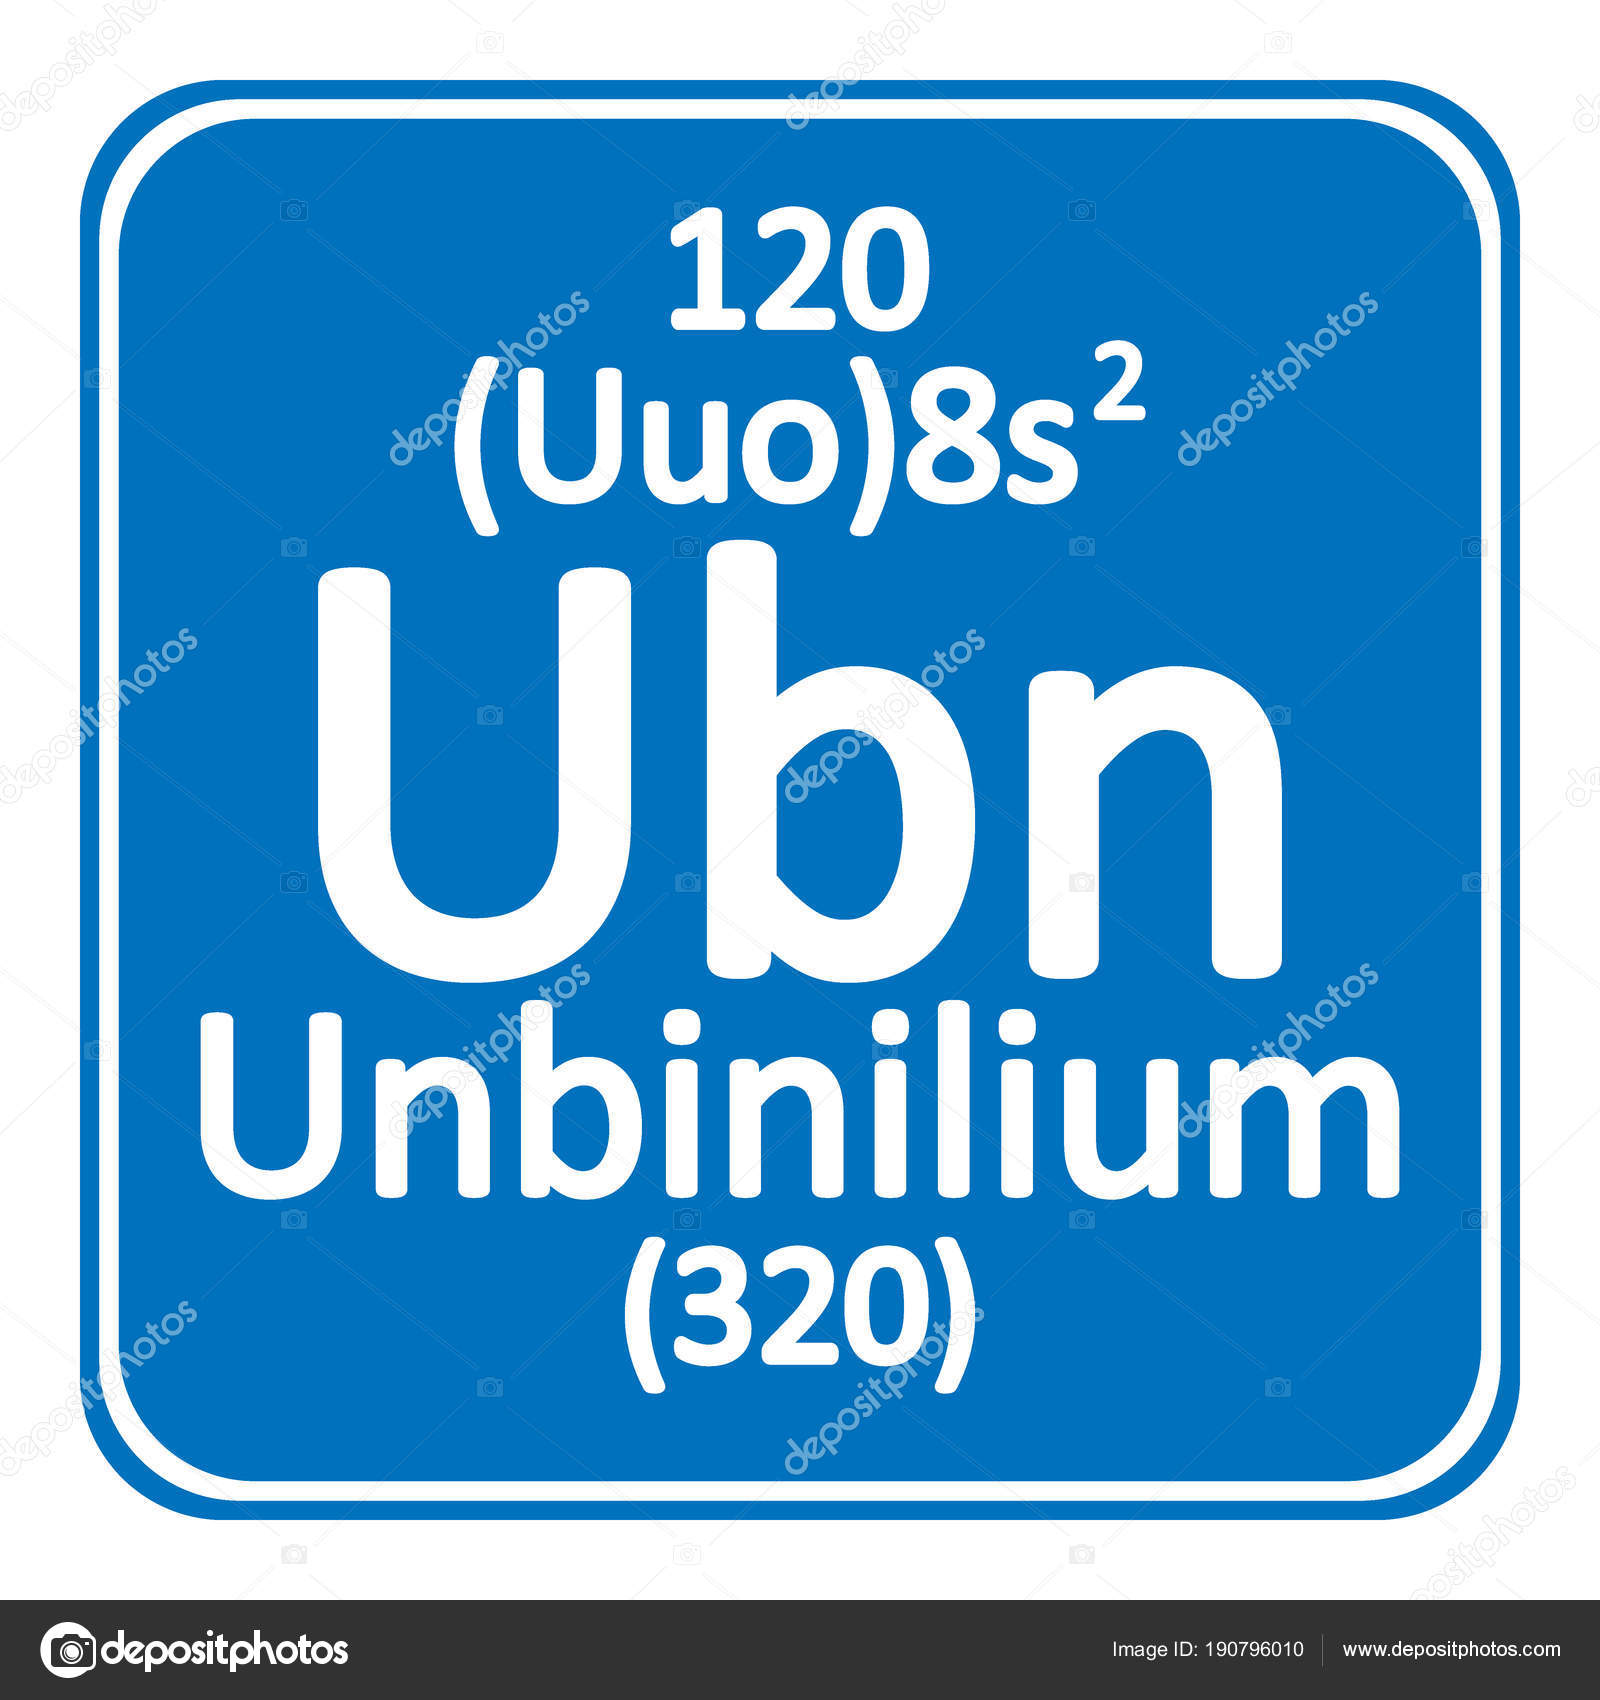 Periodic table element unbinilium icon stock vector konstsem periodic table element unbinilium icon stock vector urtaz Choice Image